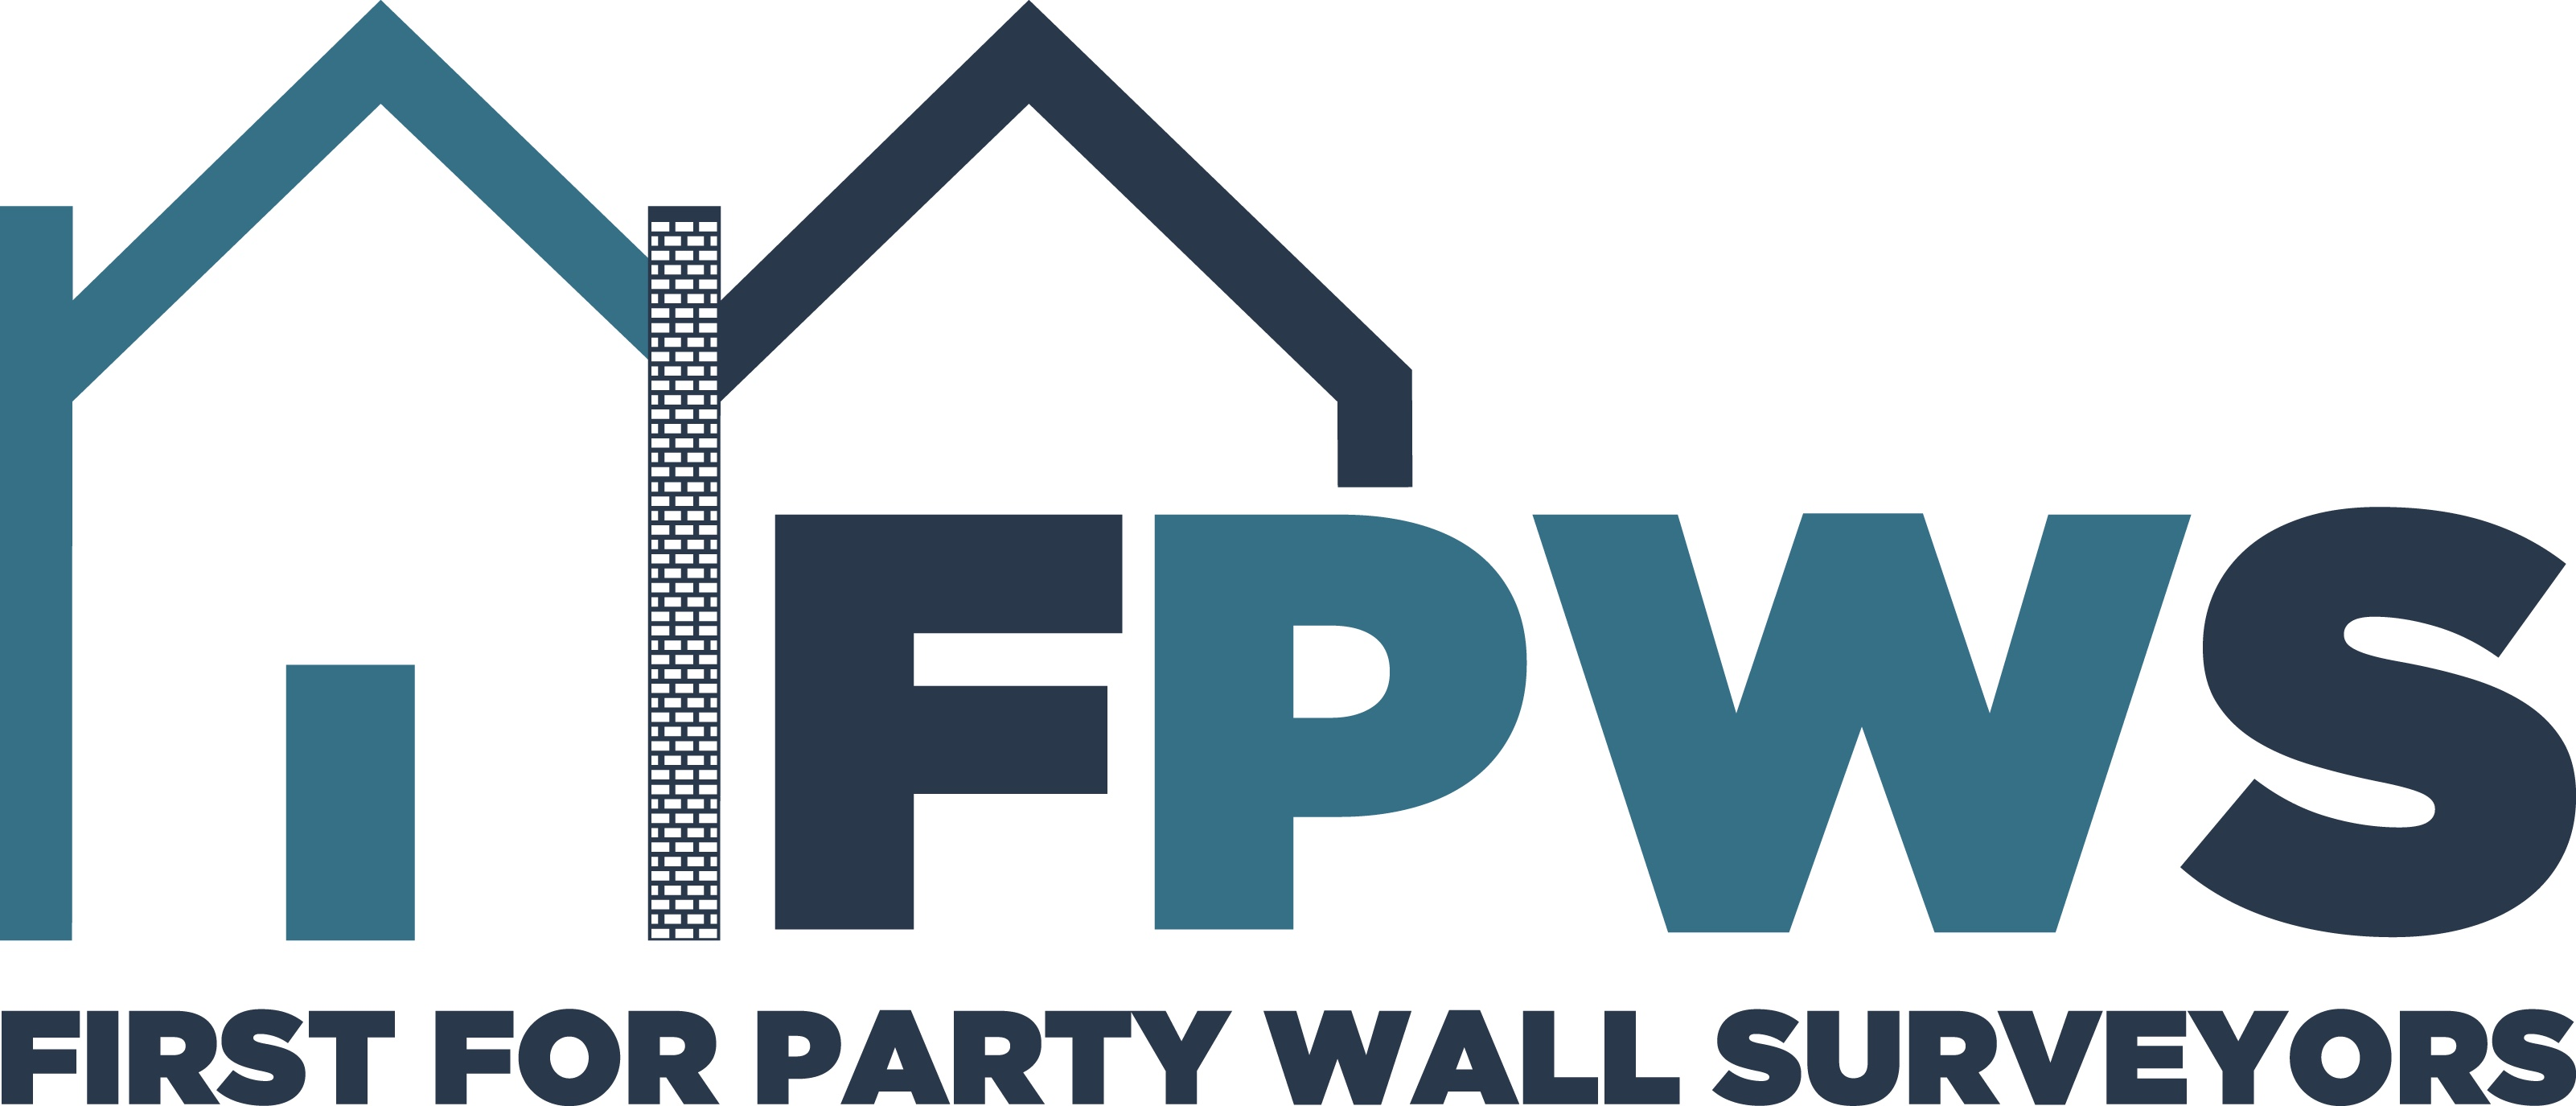 First for Party Wall Surveyors (Thurrock)